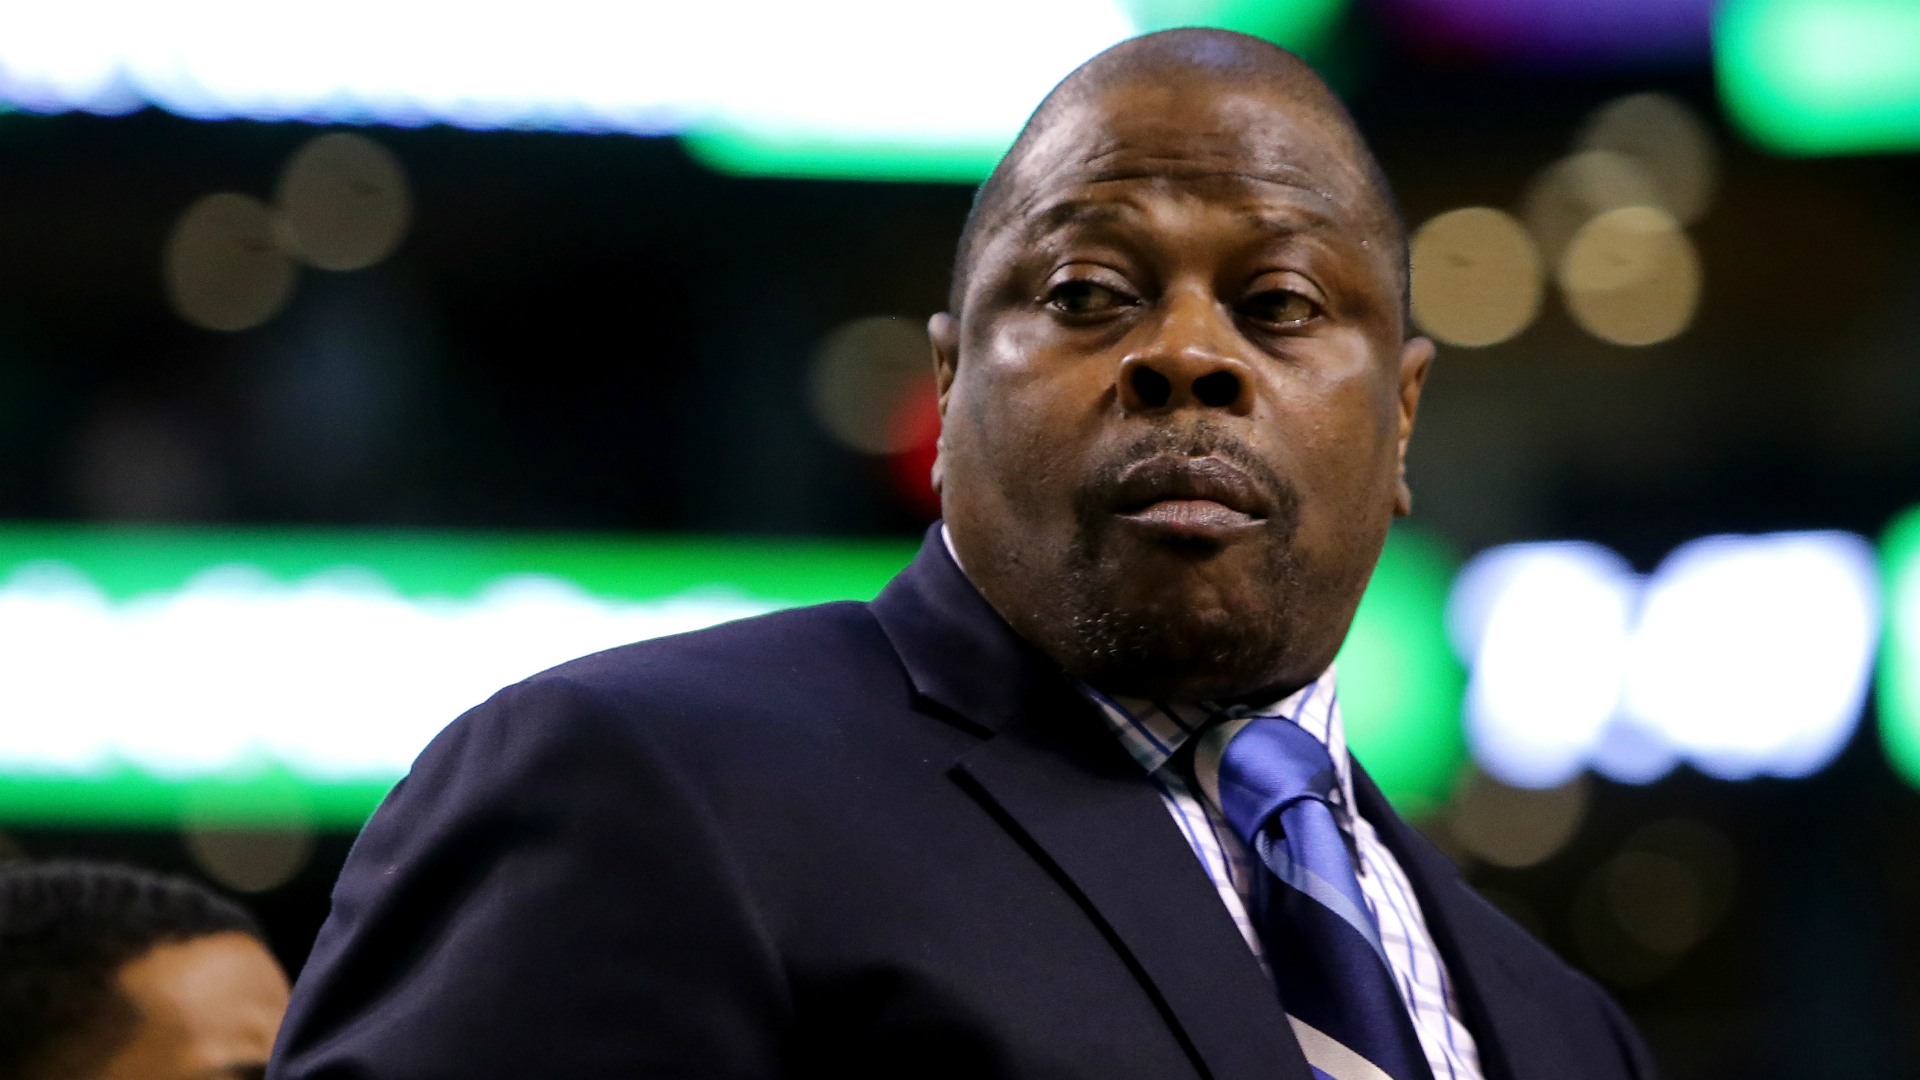 Georgetown coach Patrick Ewing discloses positive COVID-19 test, says he'll be 'fine'